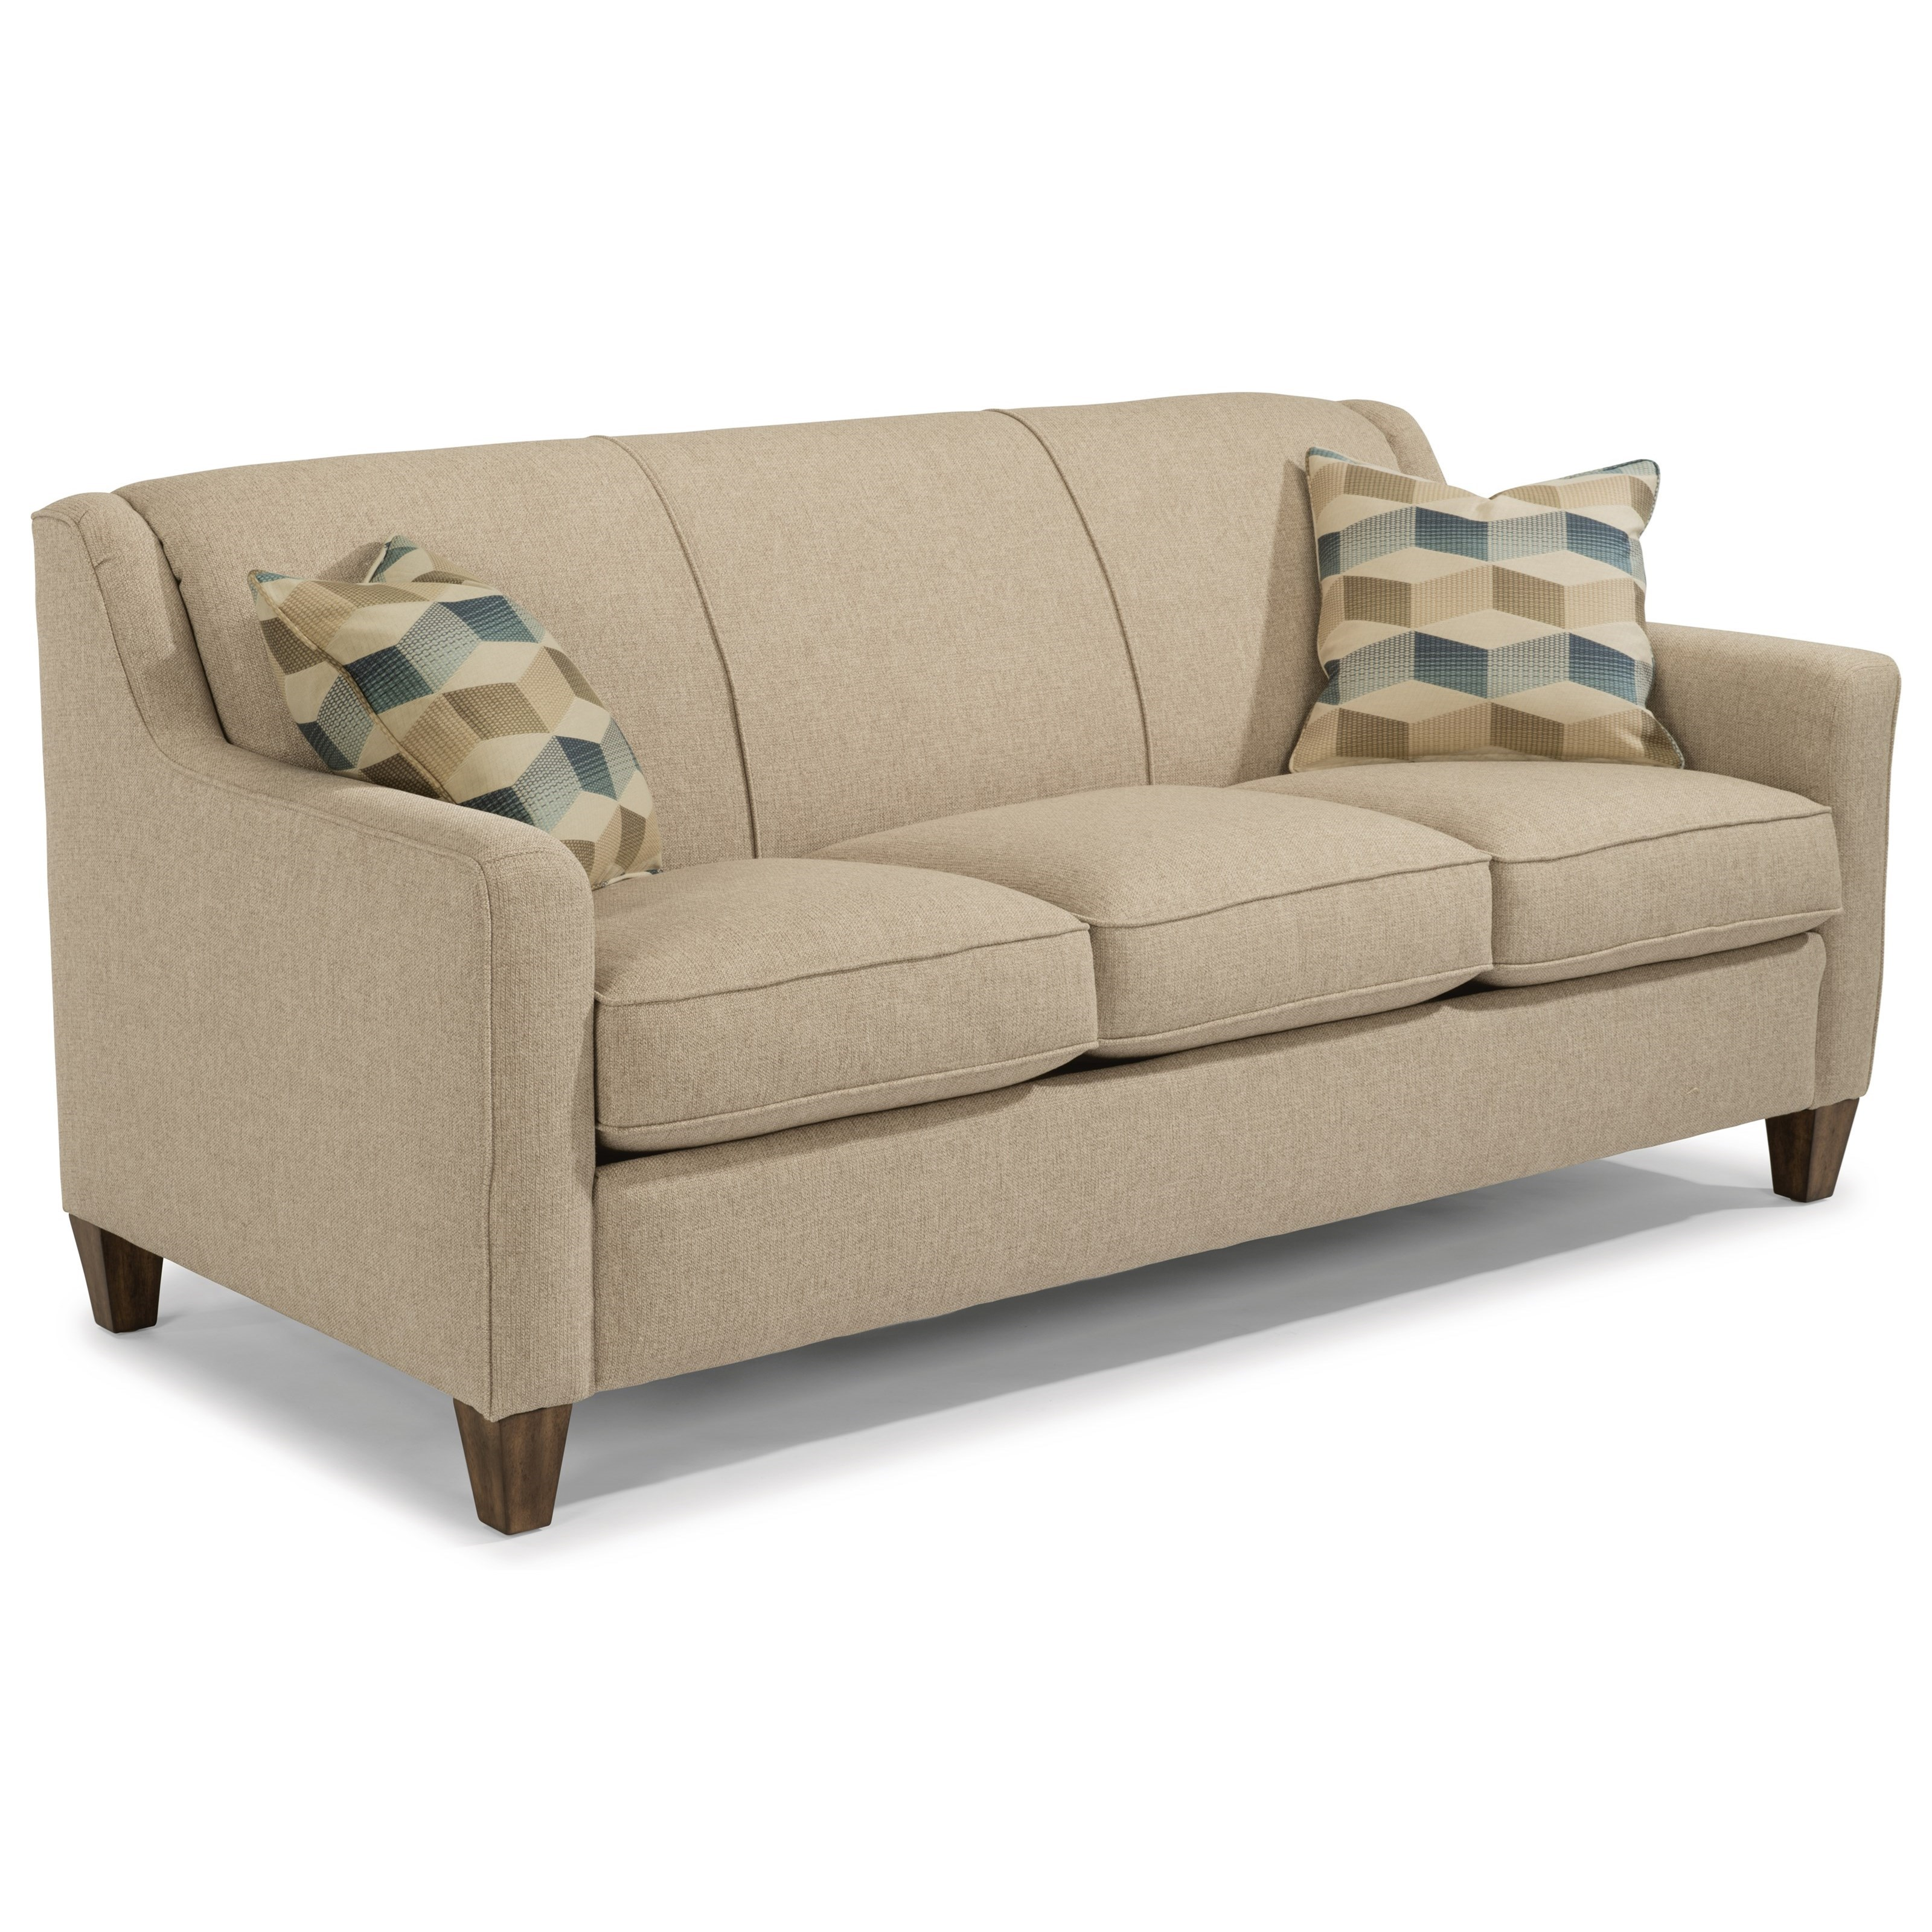 Holly Queen Sleeper Sofa by Flexsteel at Jordan's Home Furnishings